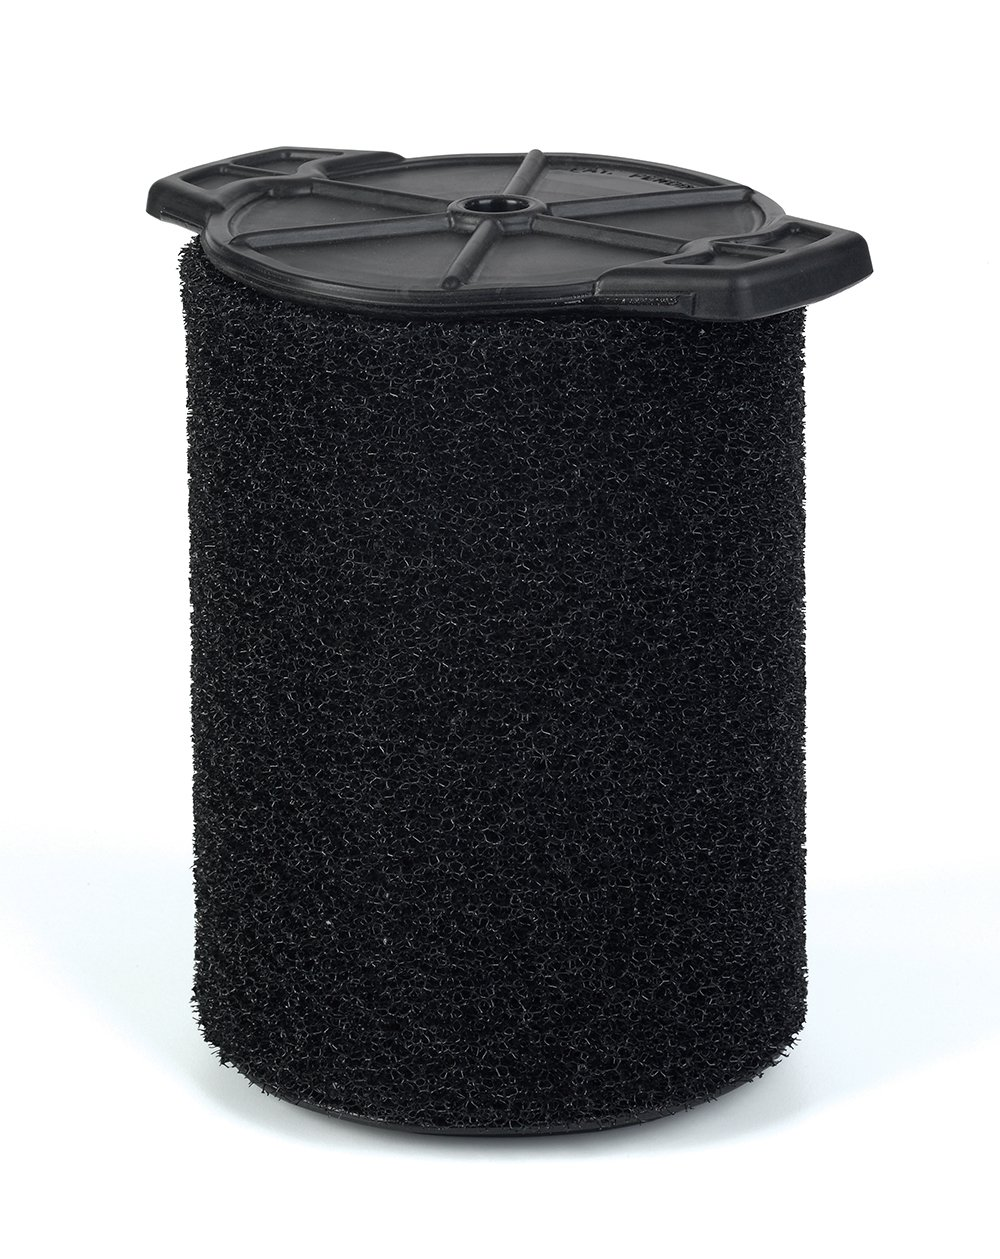 WORKSHOP Wet Vac Filters WS24200F Foam Filter For Wet Dry Vacuum Cleaner (Single Wet Application Foam Filter) For WORKSHOP 5-Gallon To 16-Gallon Shop Vacuum Cleaners